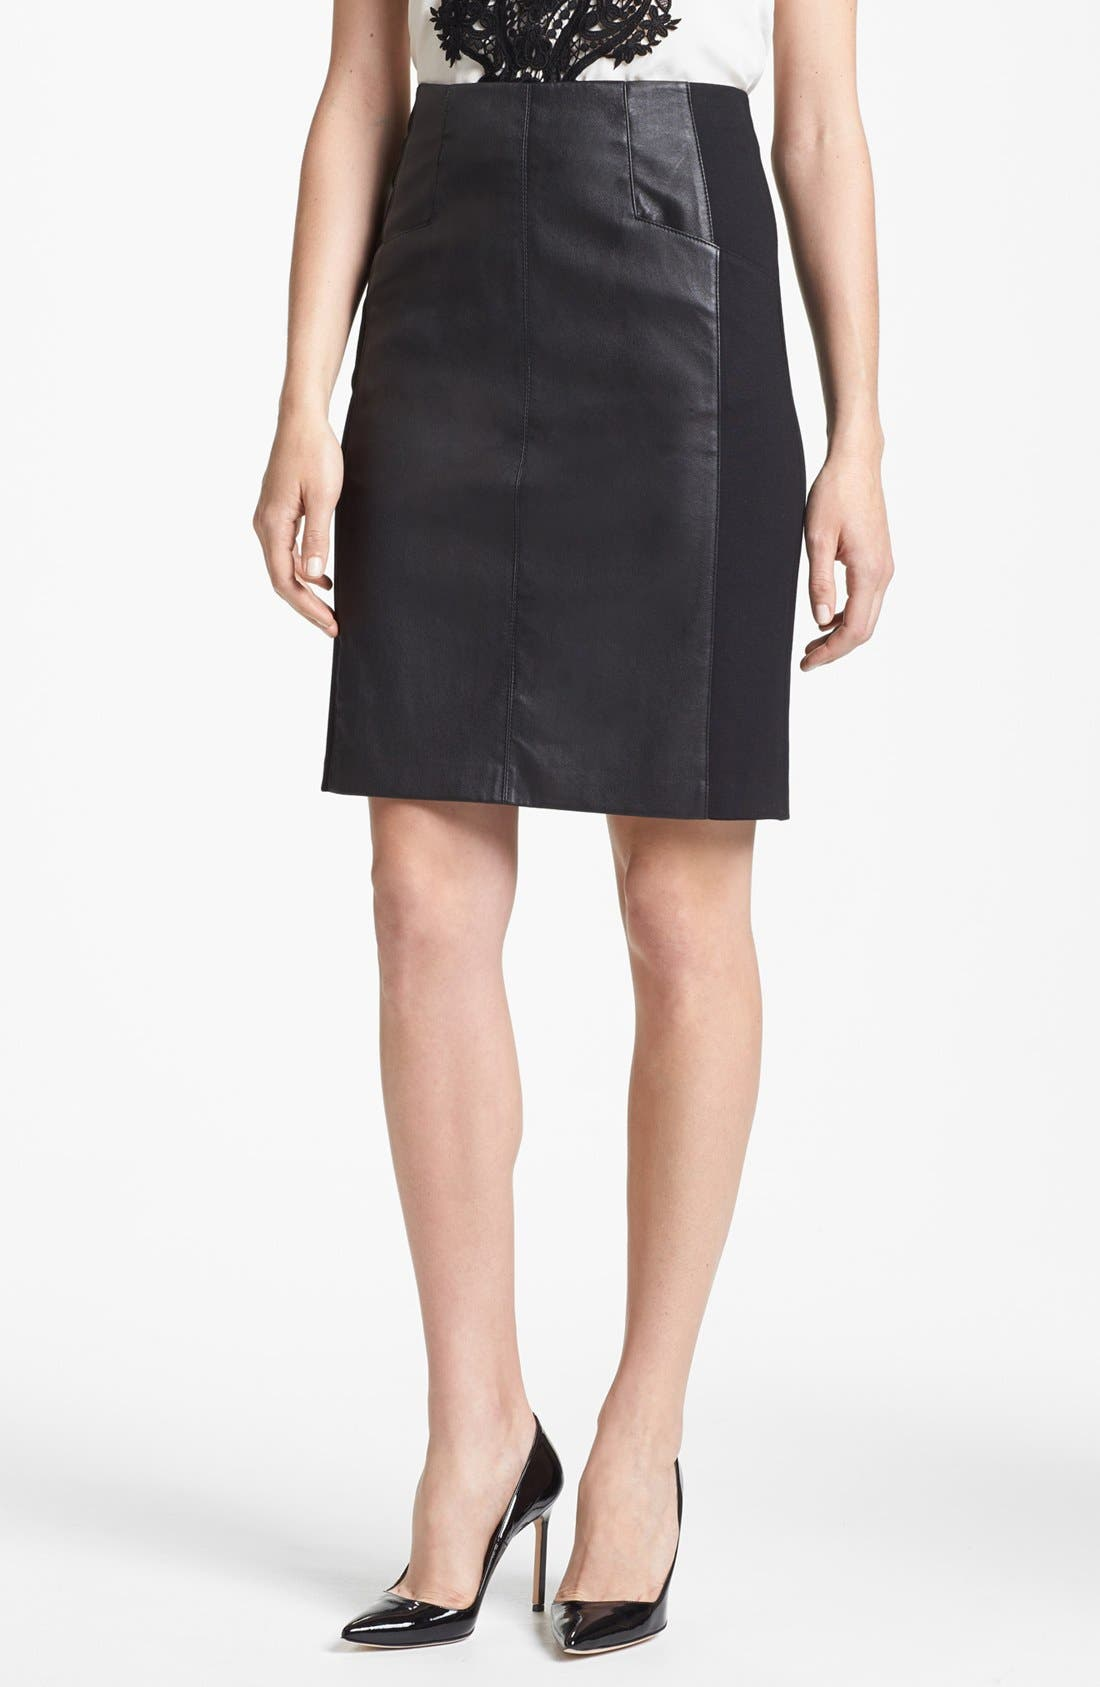 Alternate Image 1 Selected - Nanette Lepore 'Mime' Leather & Knit Skirt